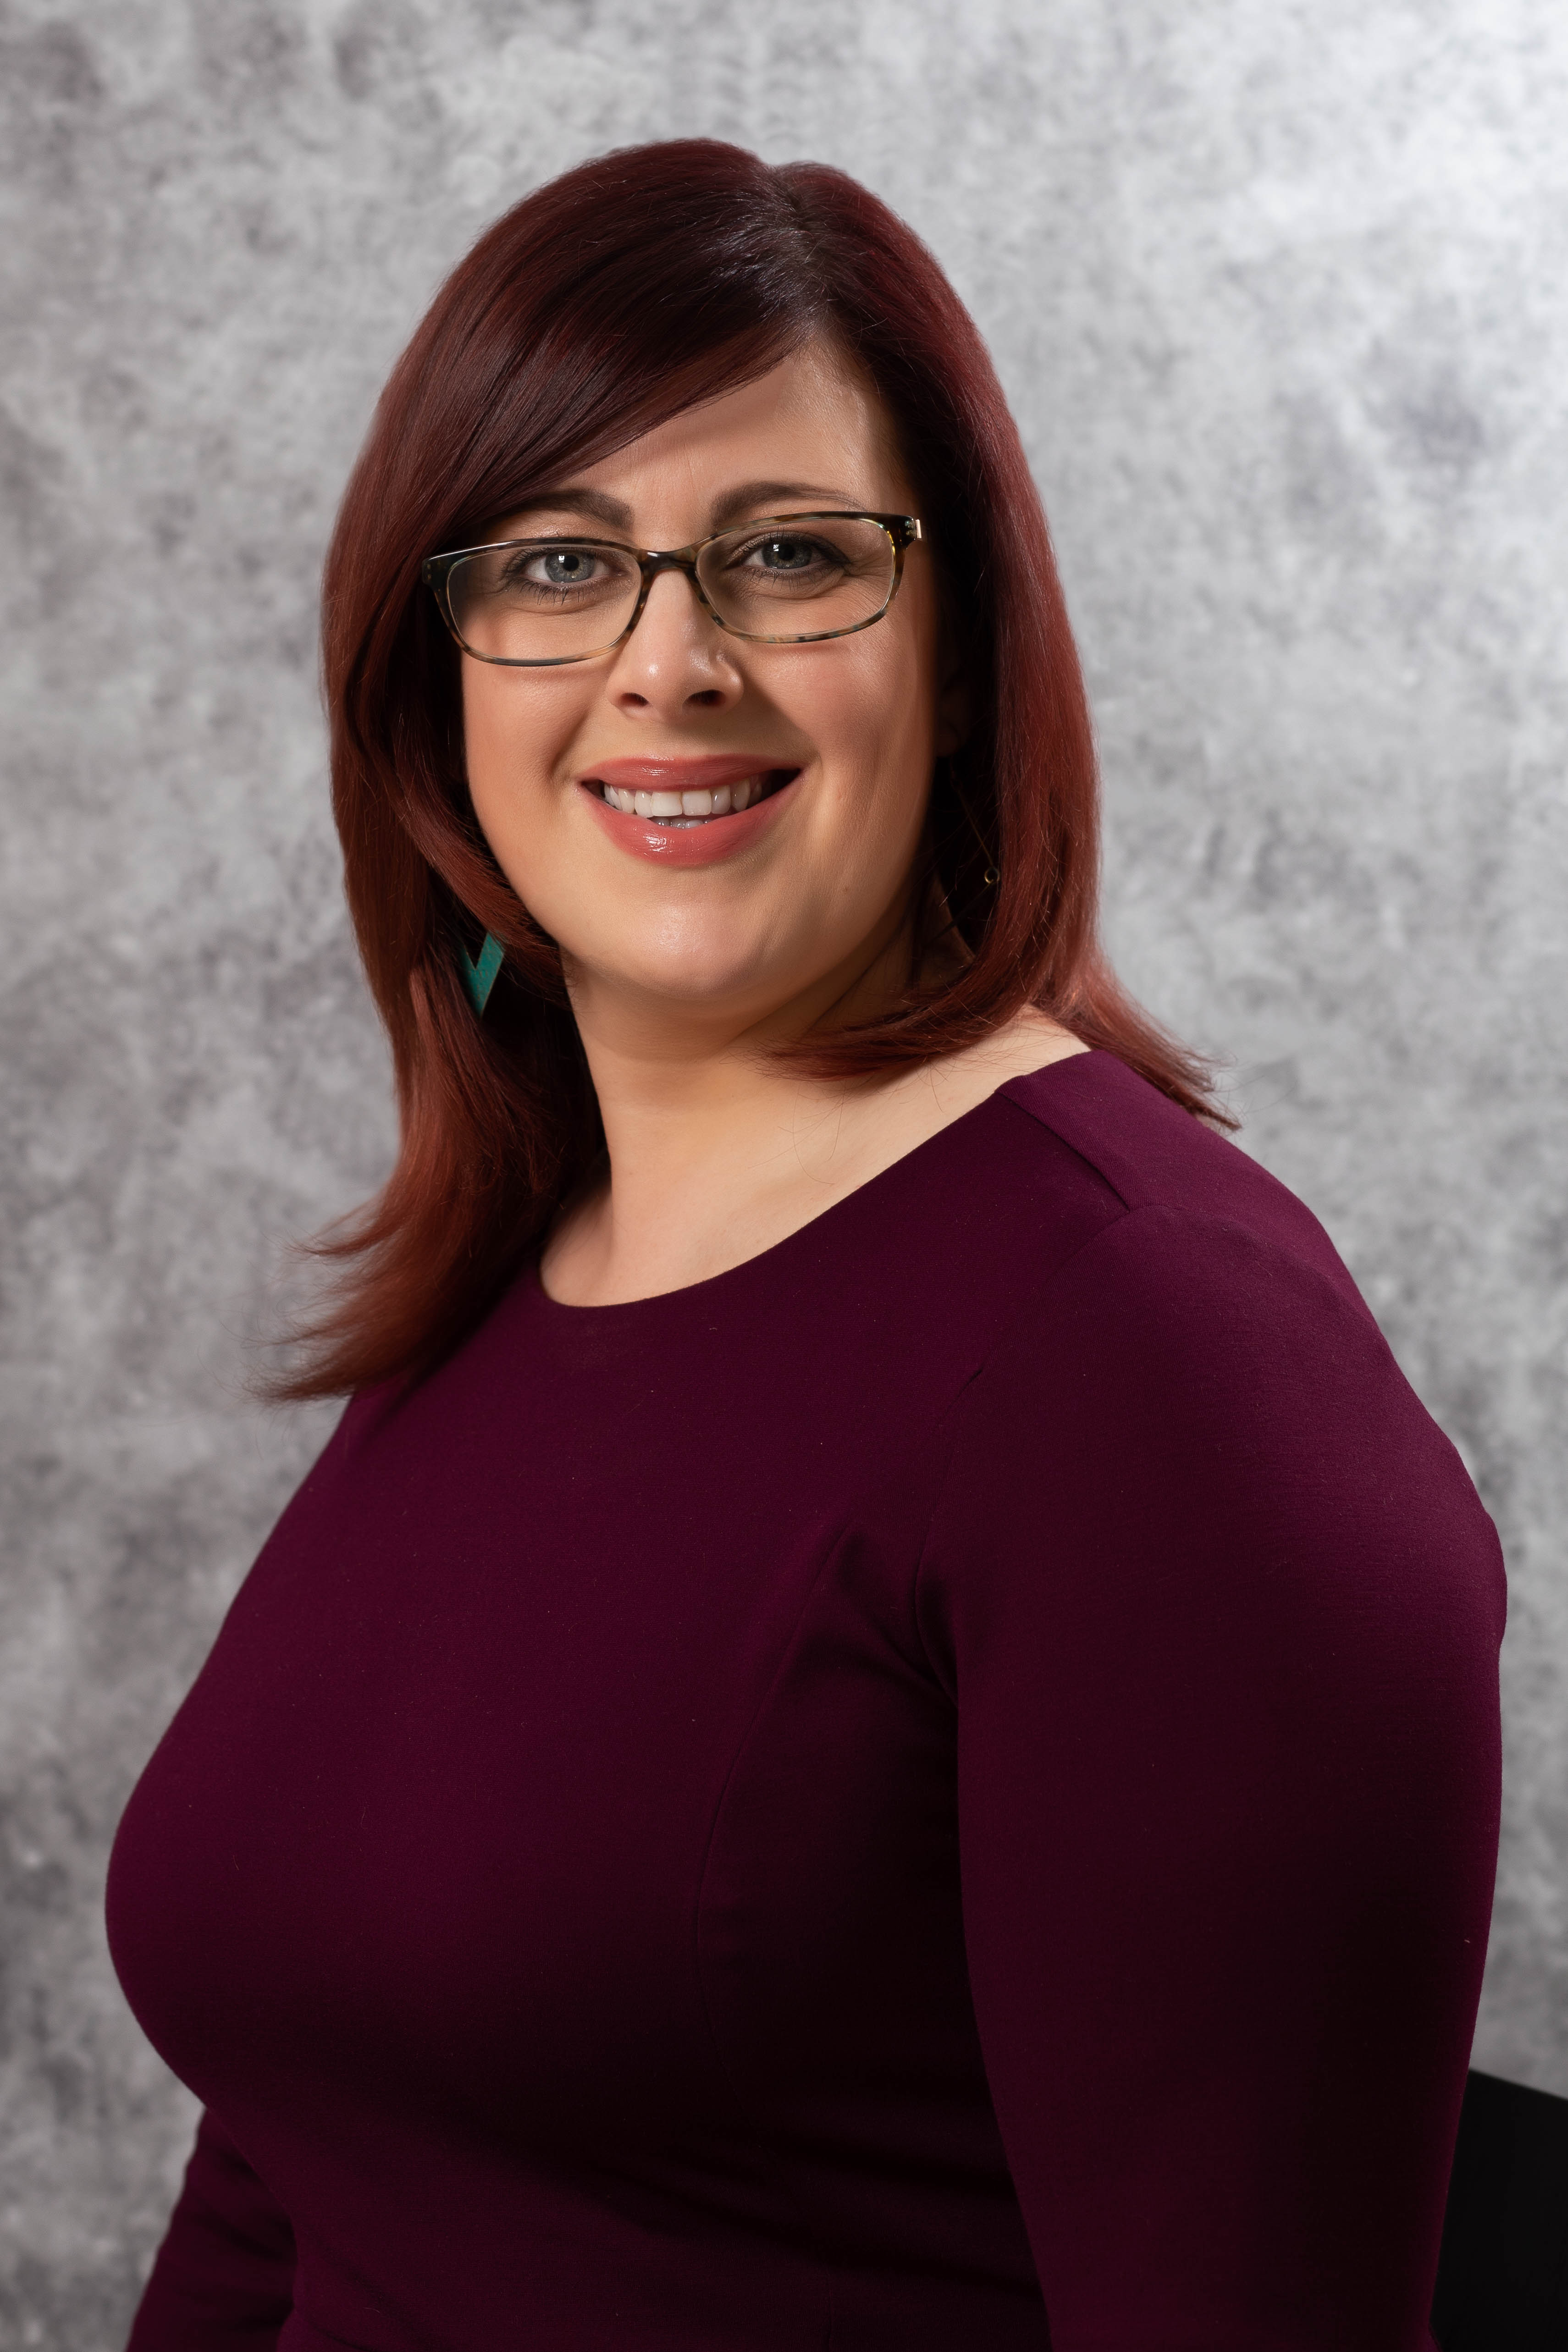 professional headshot of female businesswoman in plum dress and glasses